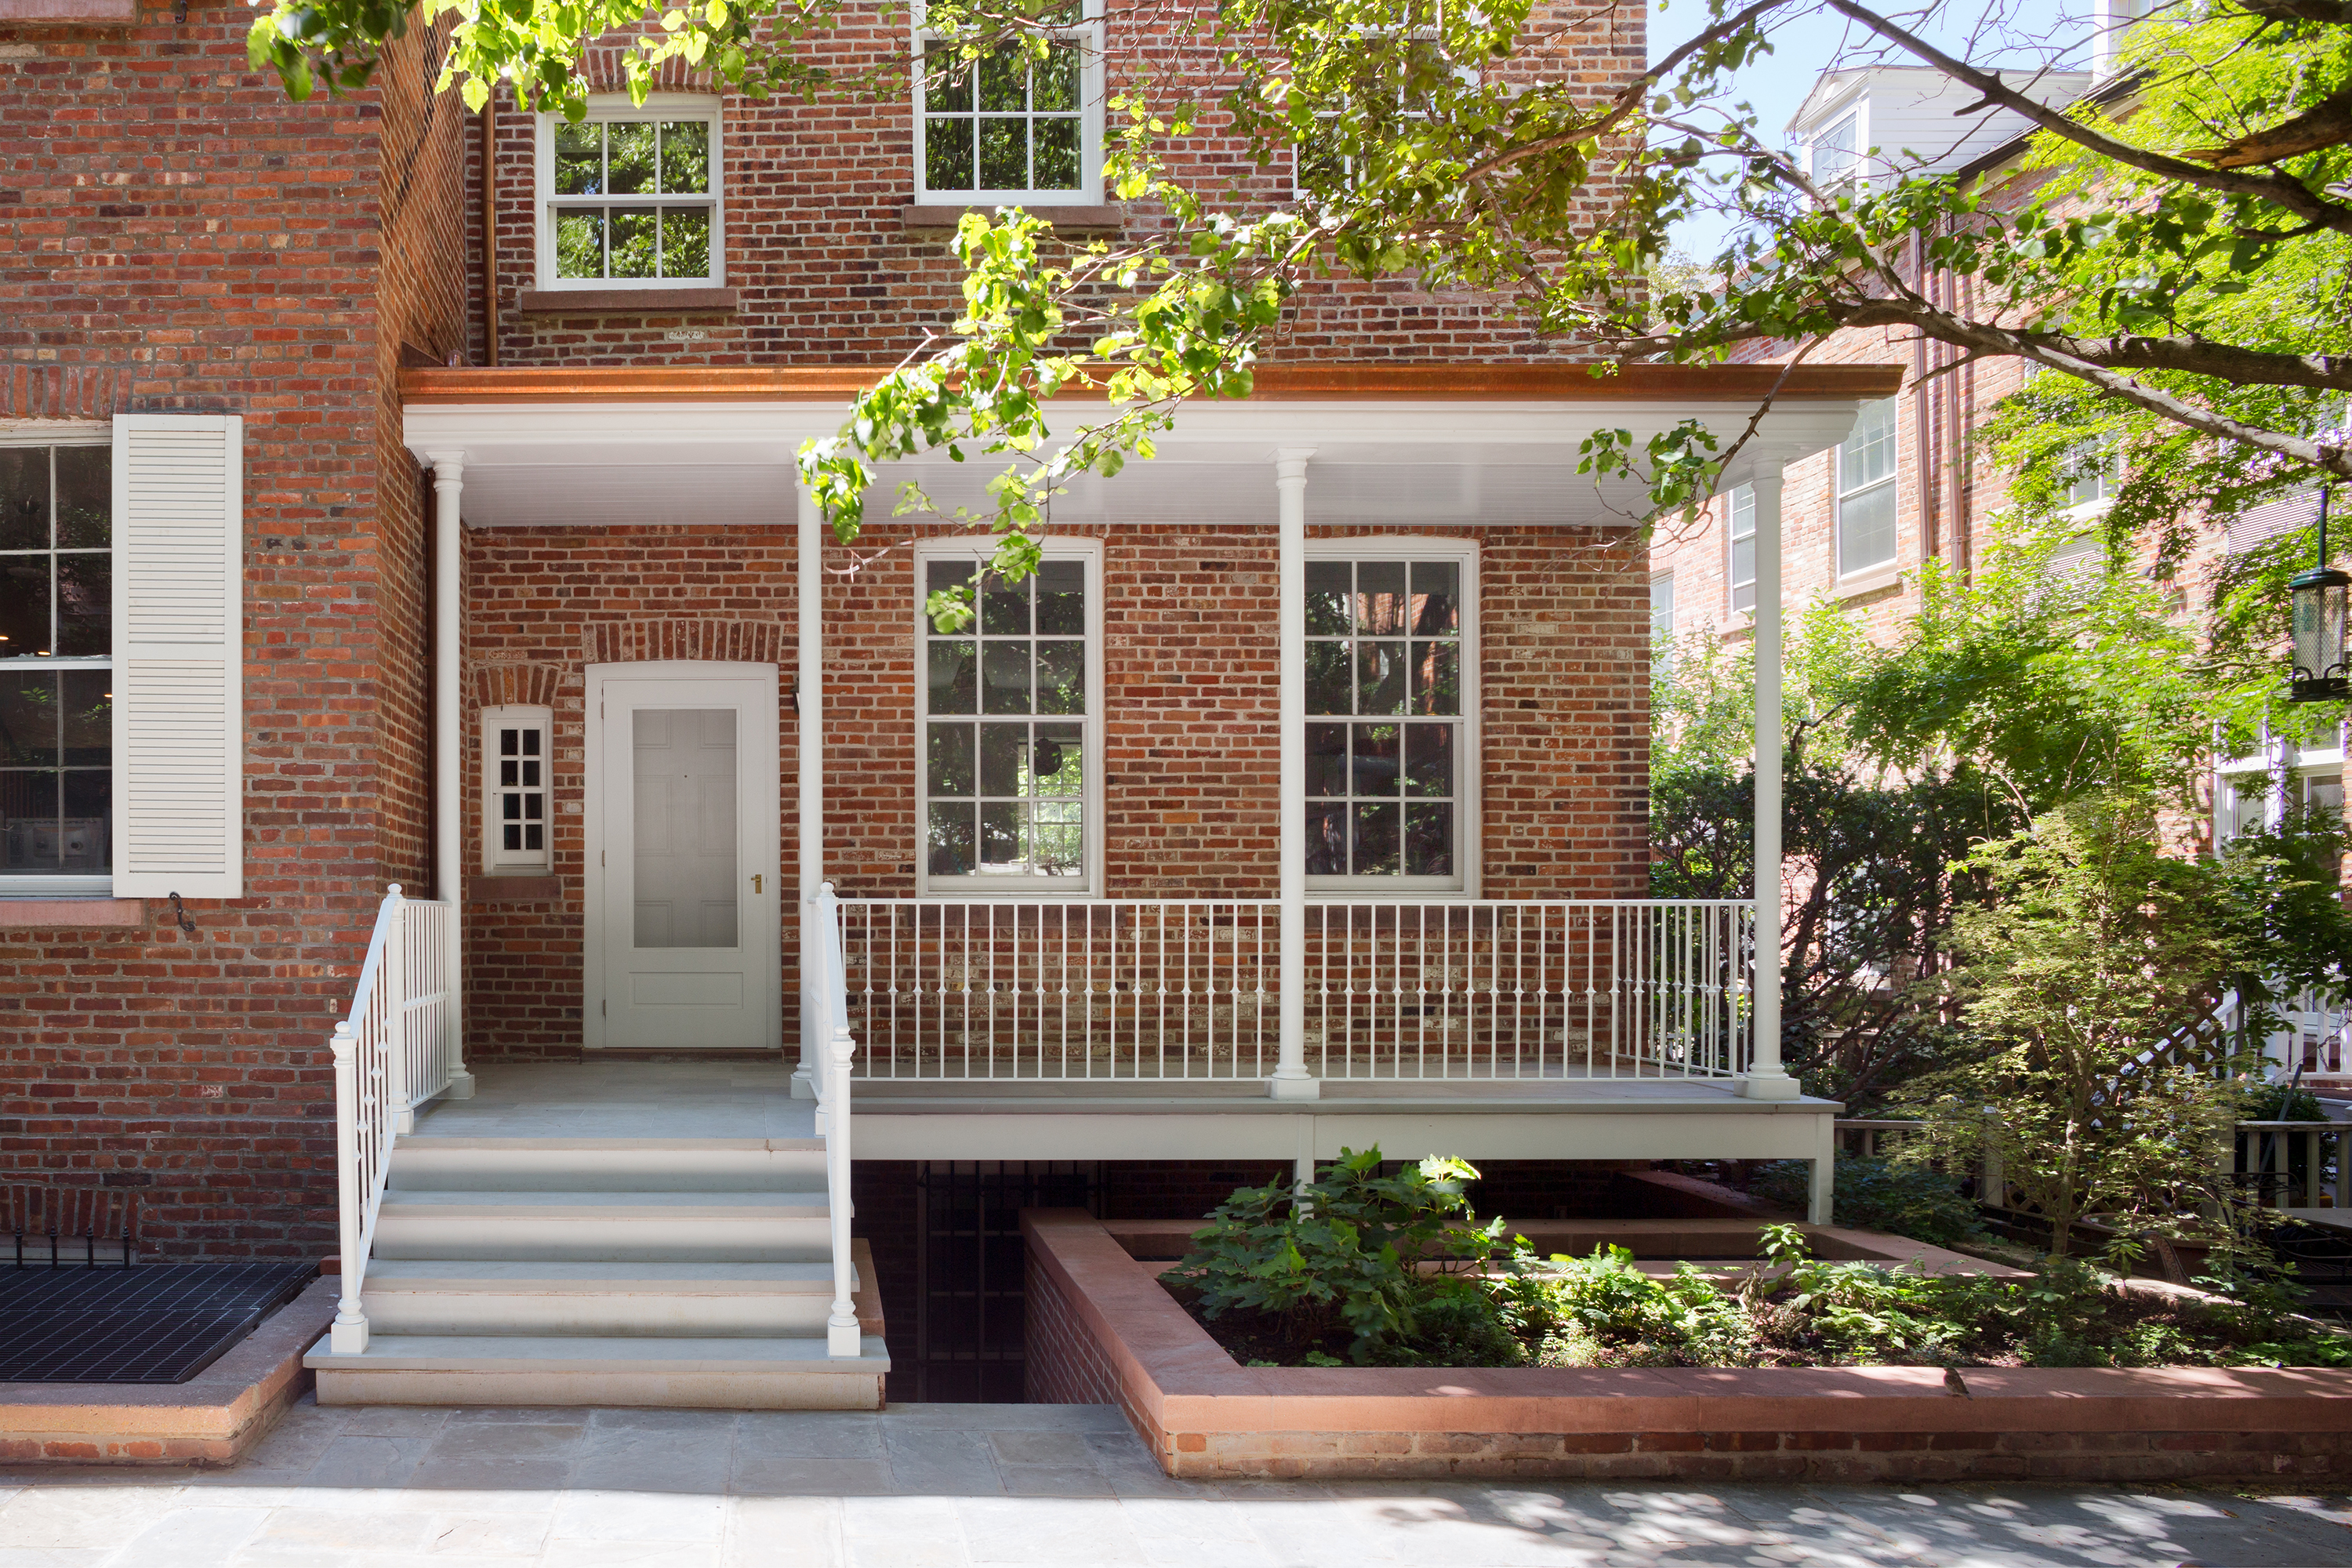 The exterior of a townhouse. The facade is red brick. There are white stairs and a white porch. The door is painted white. There are multiple windows and a garden.